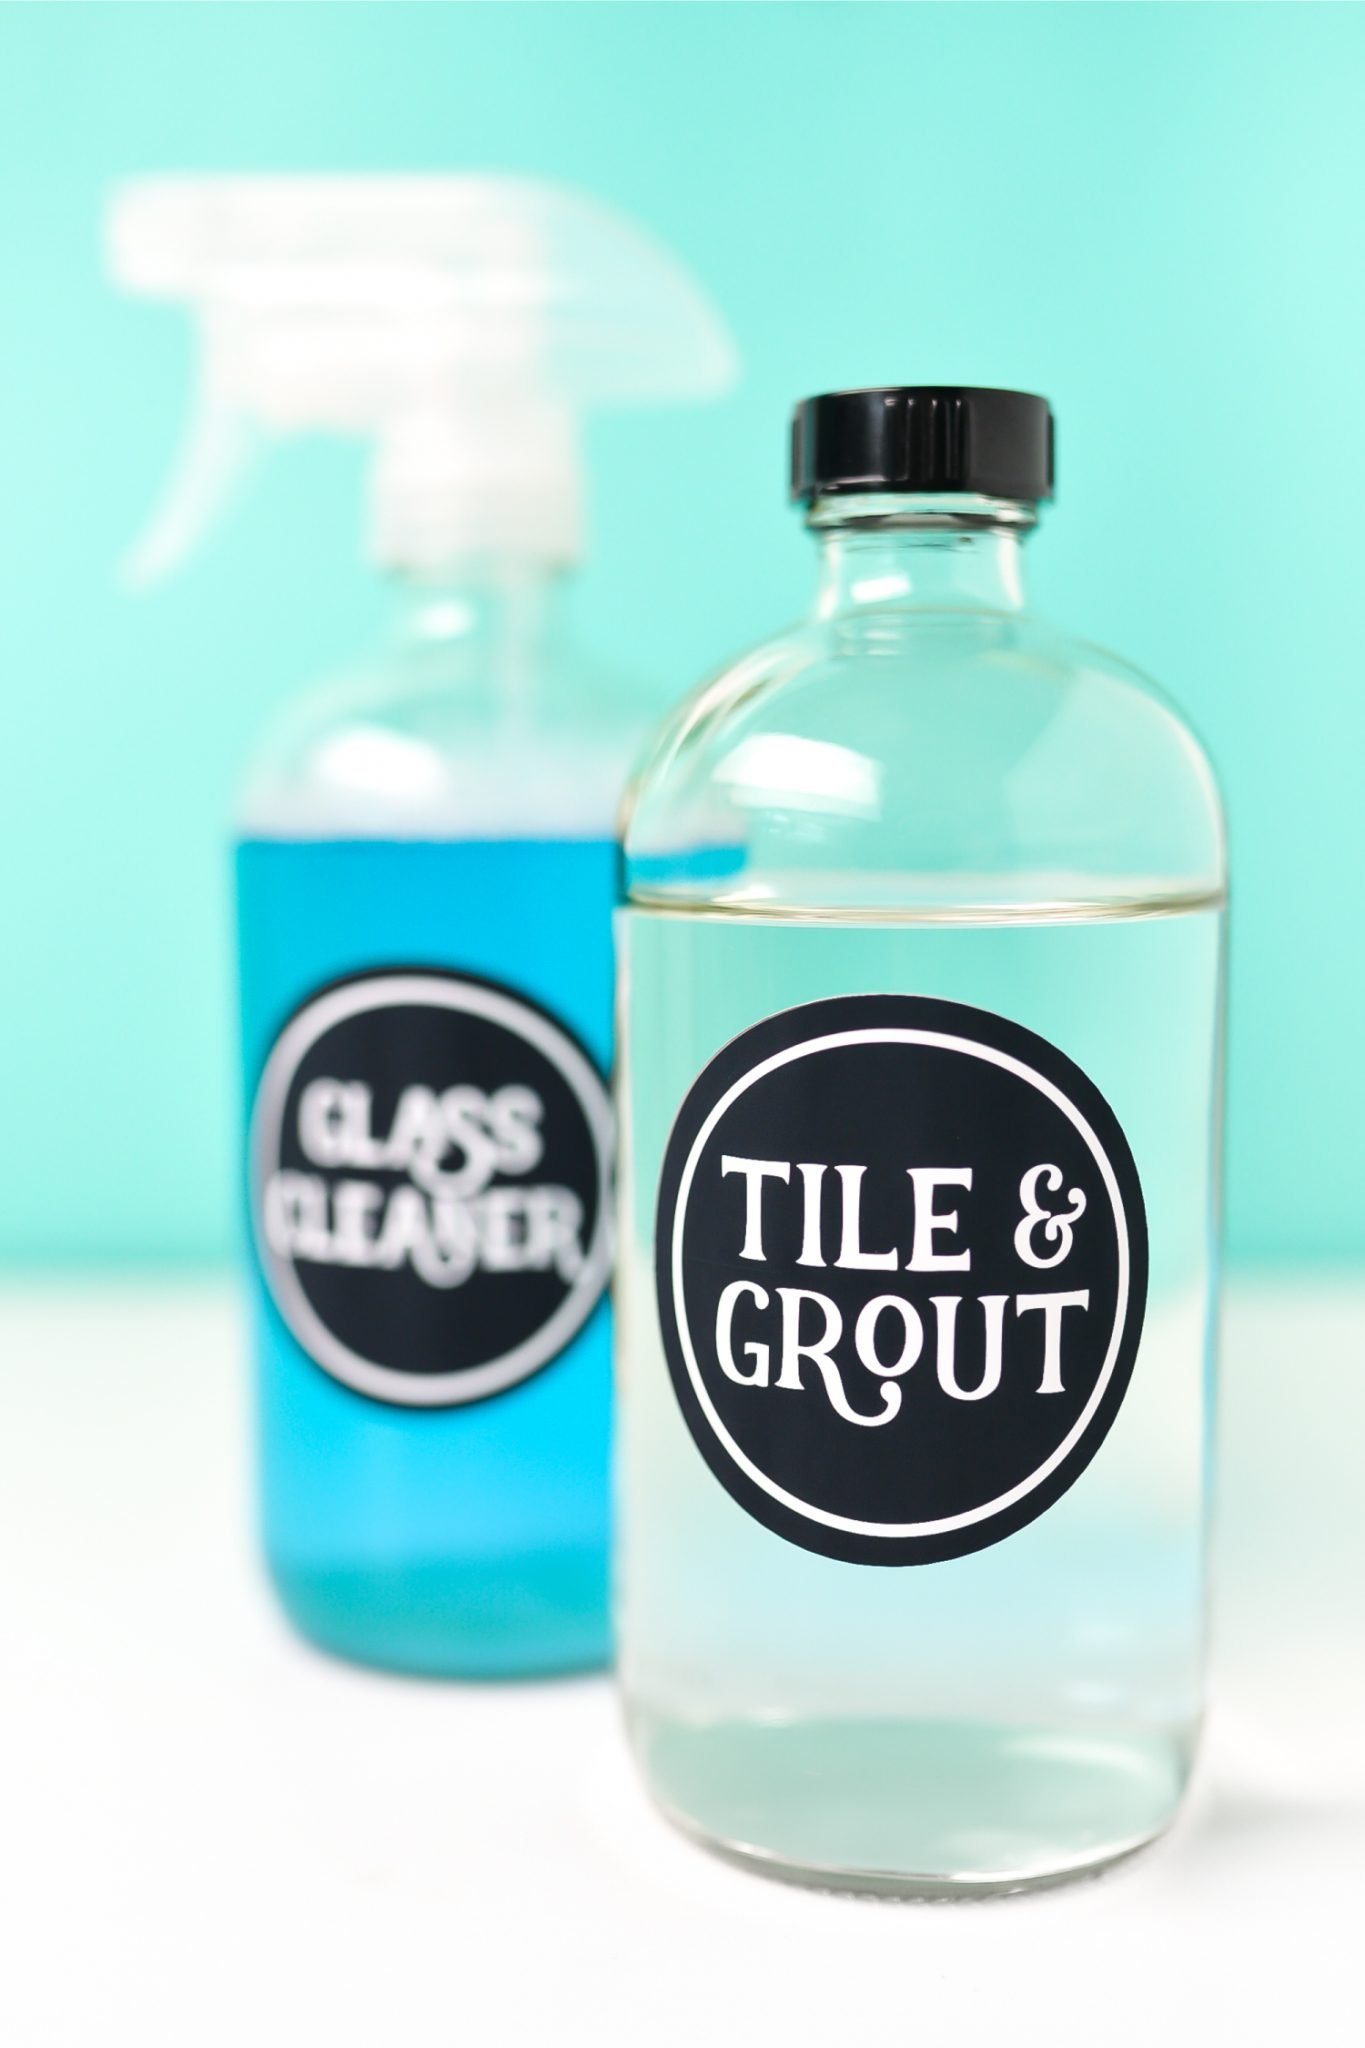 Use printable vinyl to make all sorts of stickers, labels, and decals! Here's everything you need to know about using printable vinyl, as well as a set of cleaning labels made from printable vinyl and cut on a Cricut!